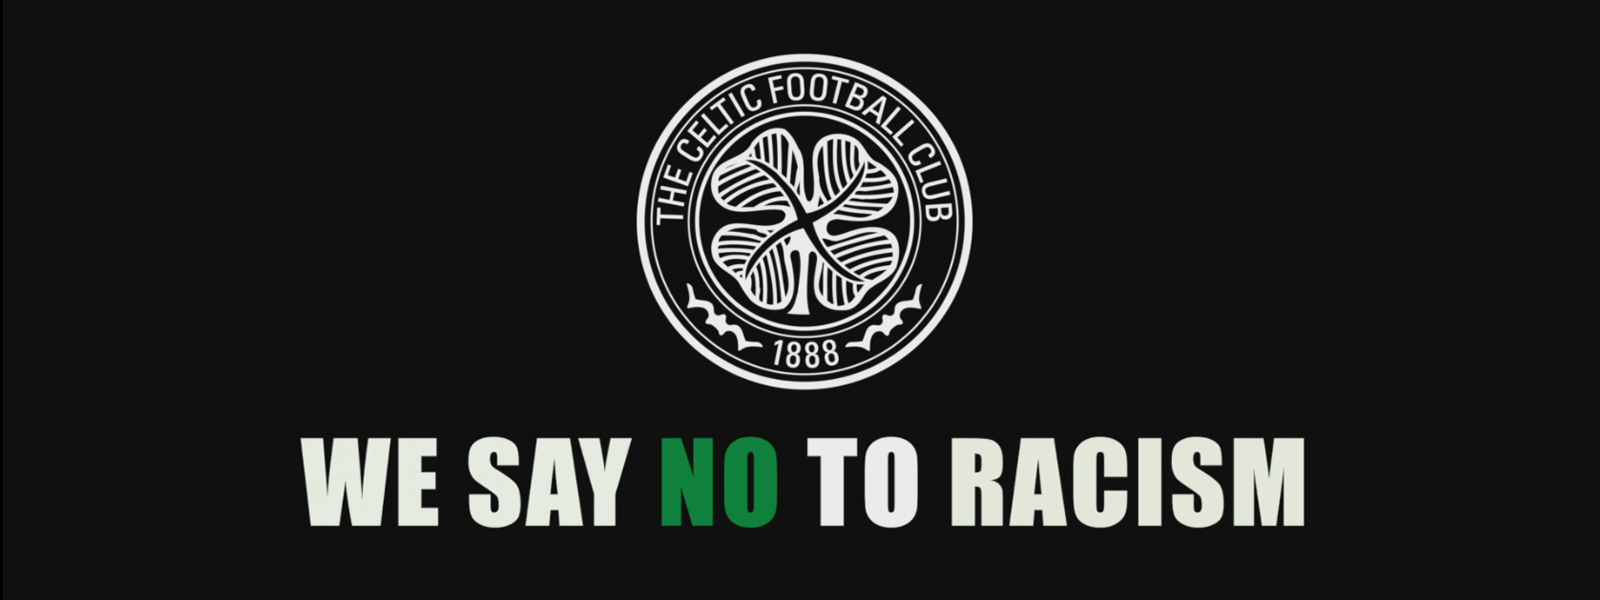 We Are Celtic